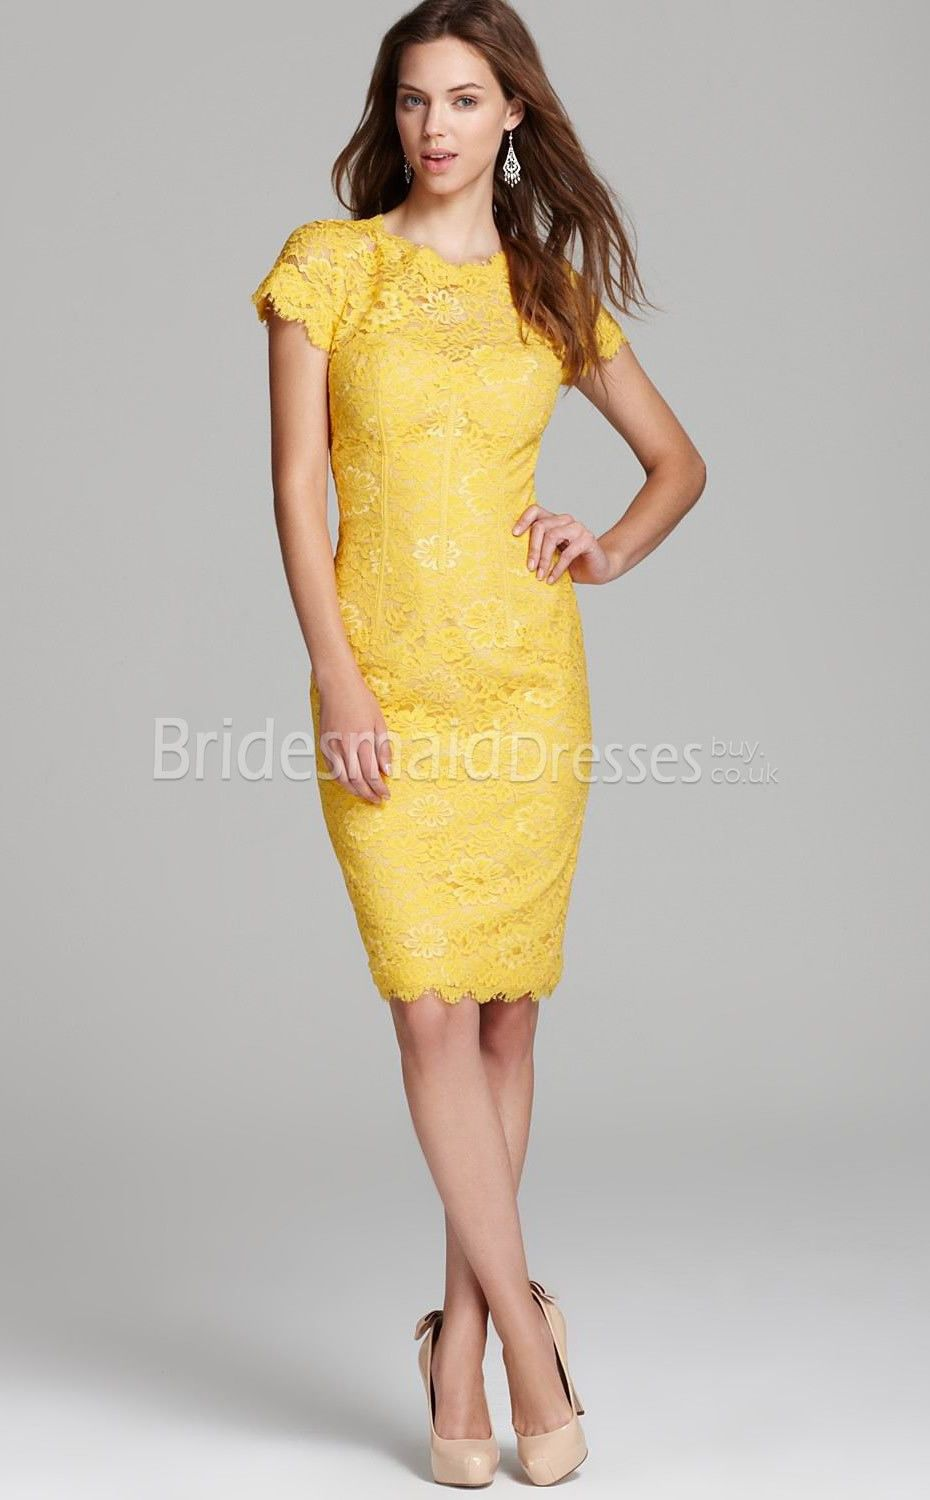 yellow bridesmaid dresses with sleeves - Google Search | Kayla\'s ...